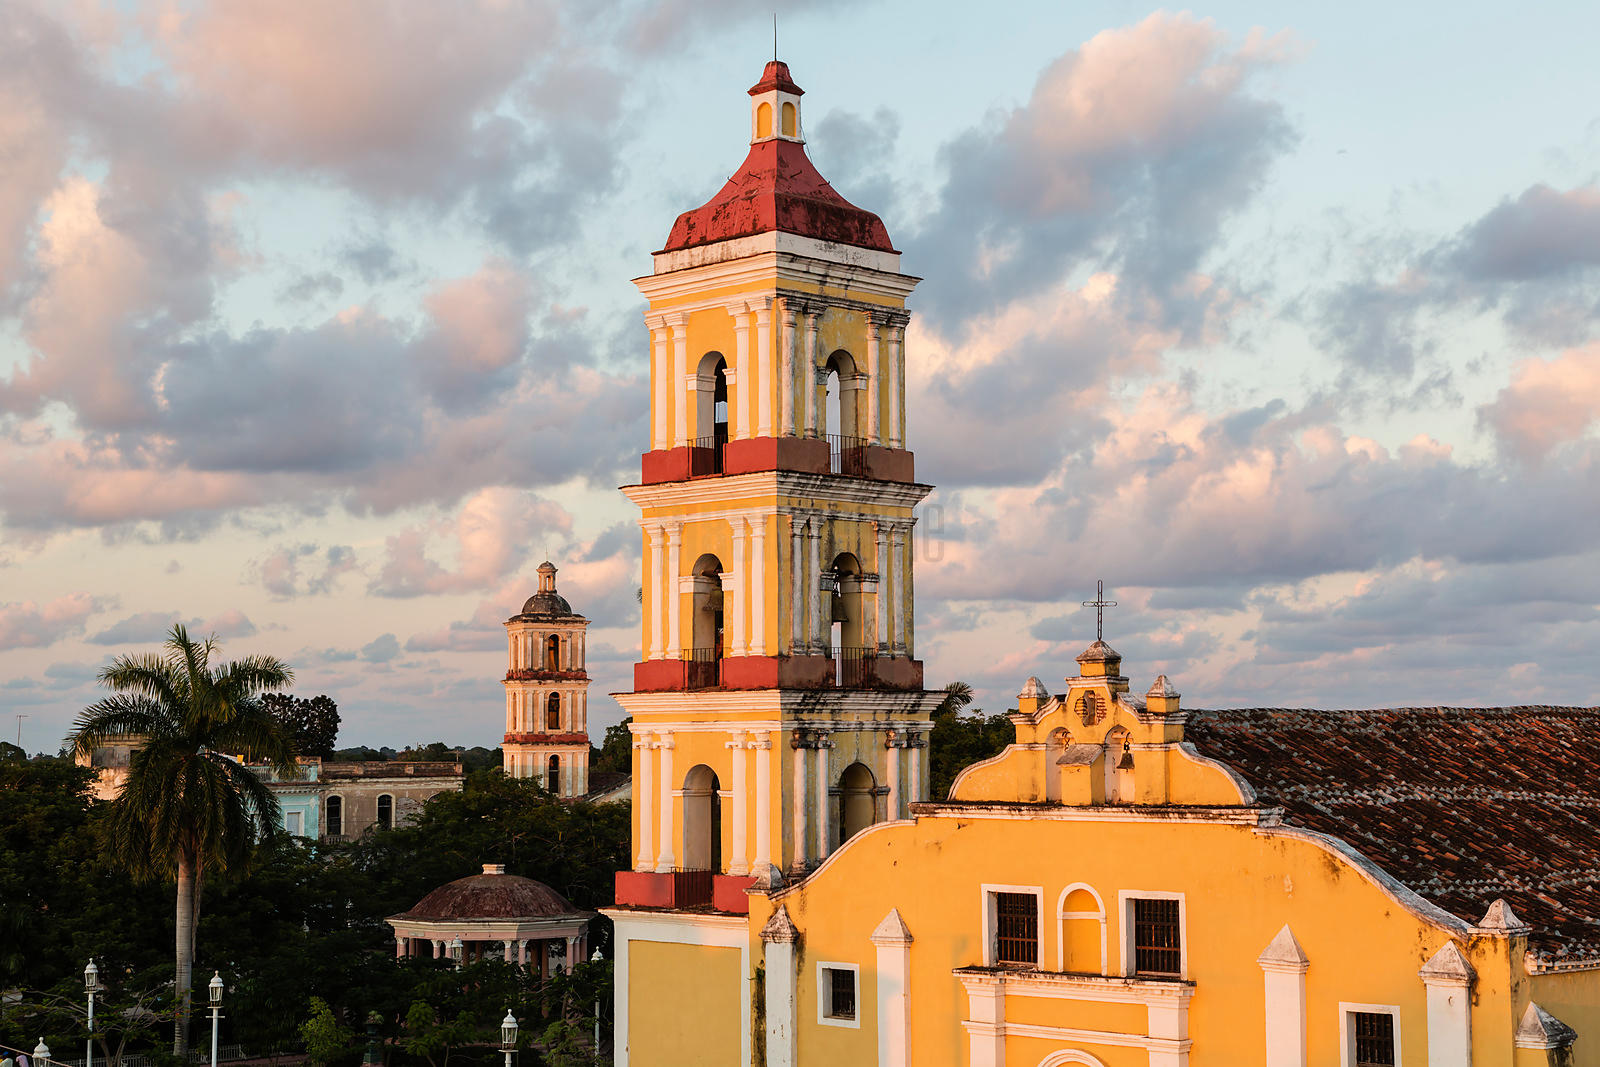 Elevated View of Iglesia Mayor San Juan Bautista in the Main Square at Dusk